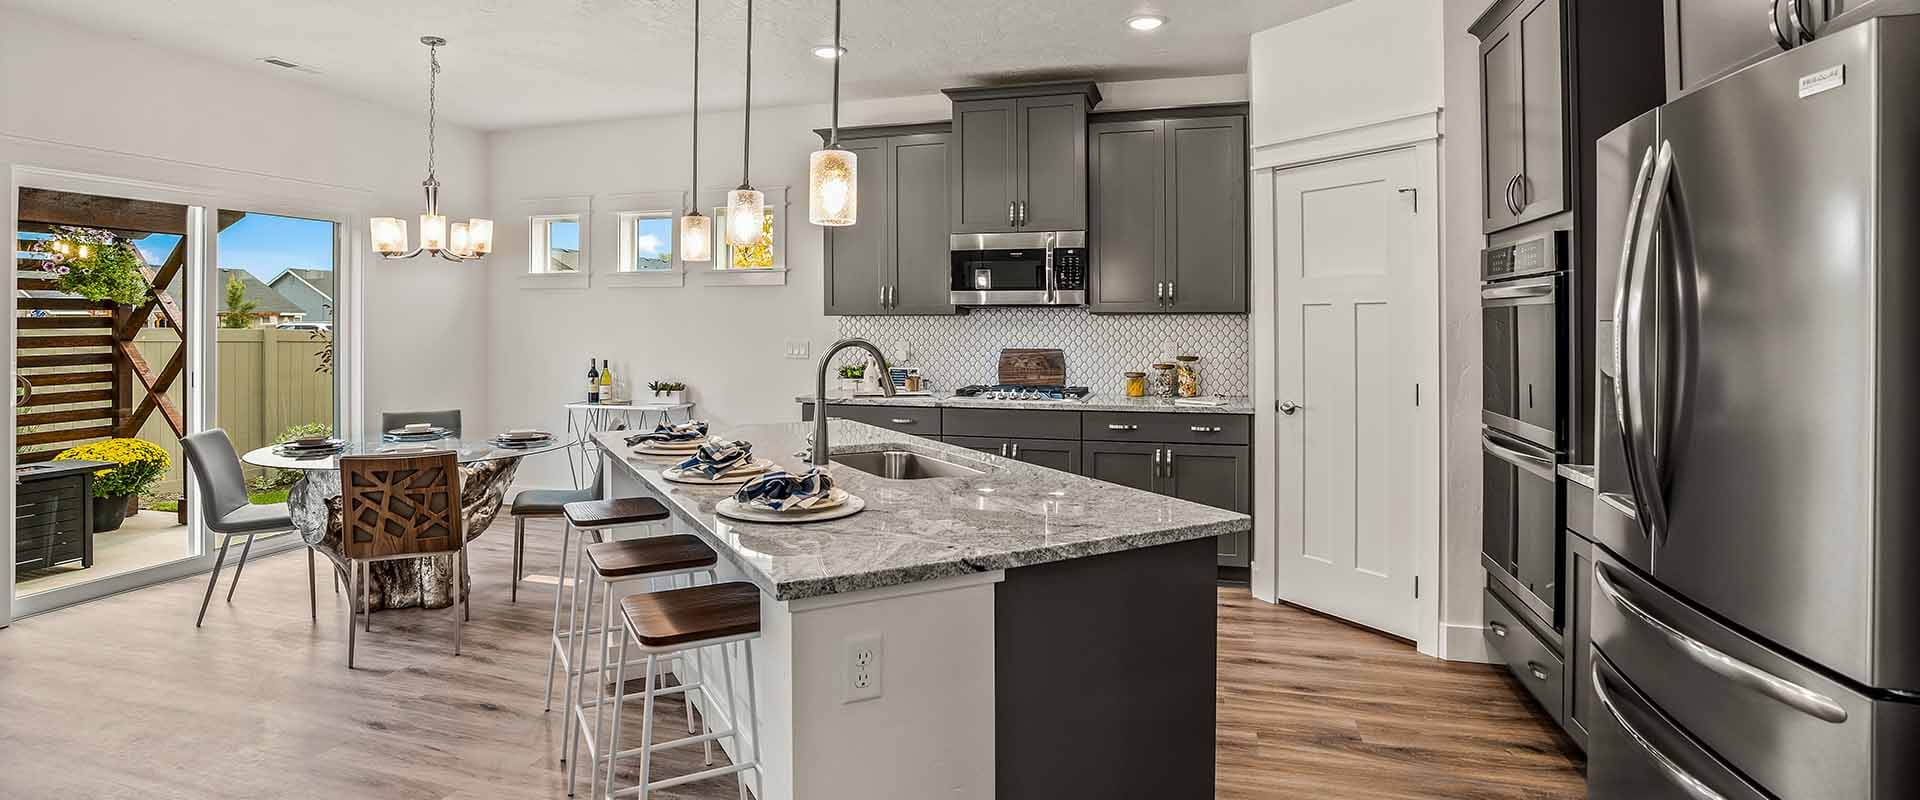 Hubble Homes Parade Home-New-Homes-Star-Idaho_0002_Parade Home - Silkwood - Kitchen- 582 N Heliopolis Way-14.jpg